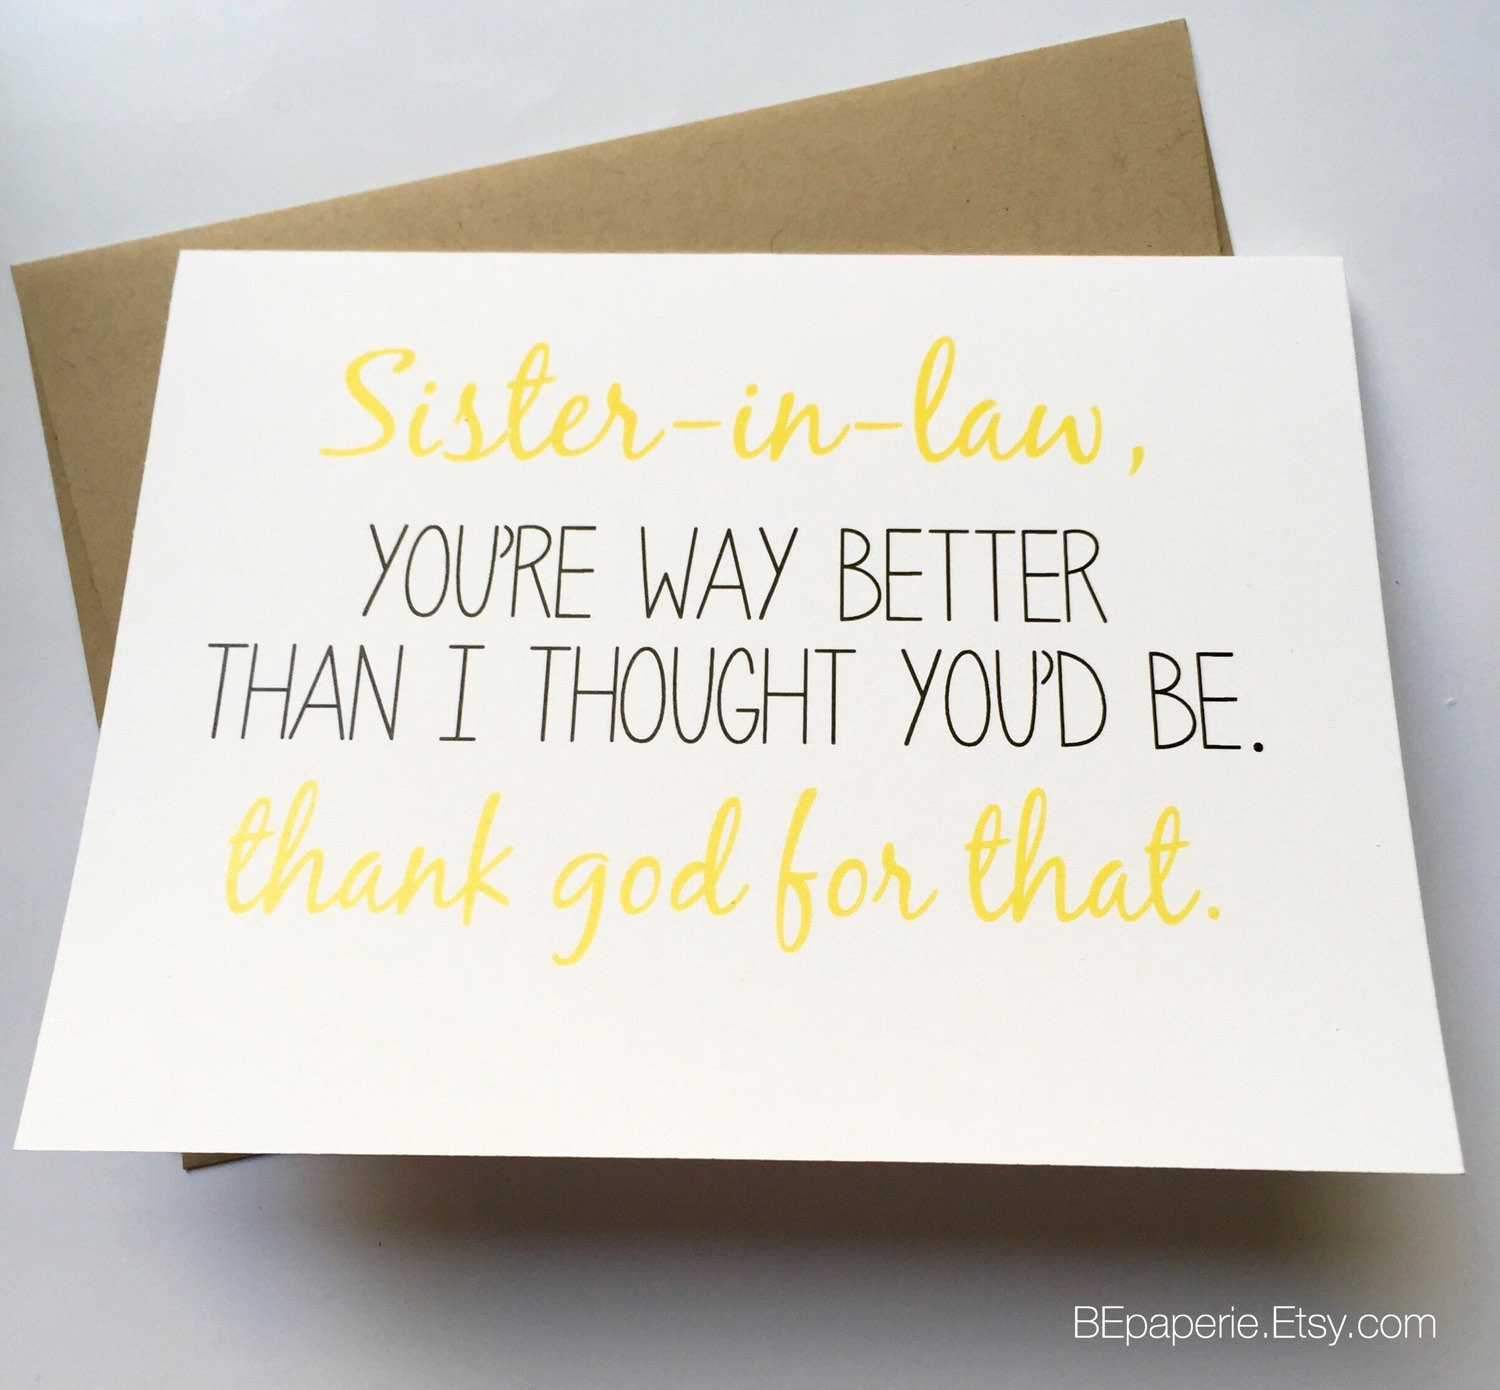 birthday card messages for sister funny ; sister-birthday-card-messages-fresh-sister-in-law-card-sister-birthday-card-funny-sister-card-of-sister-birthday-card-messages